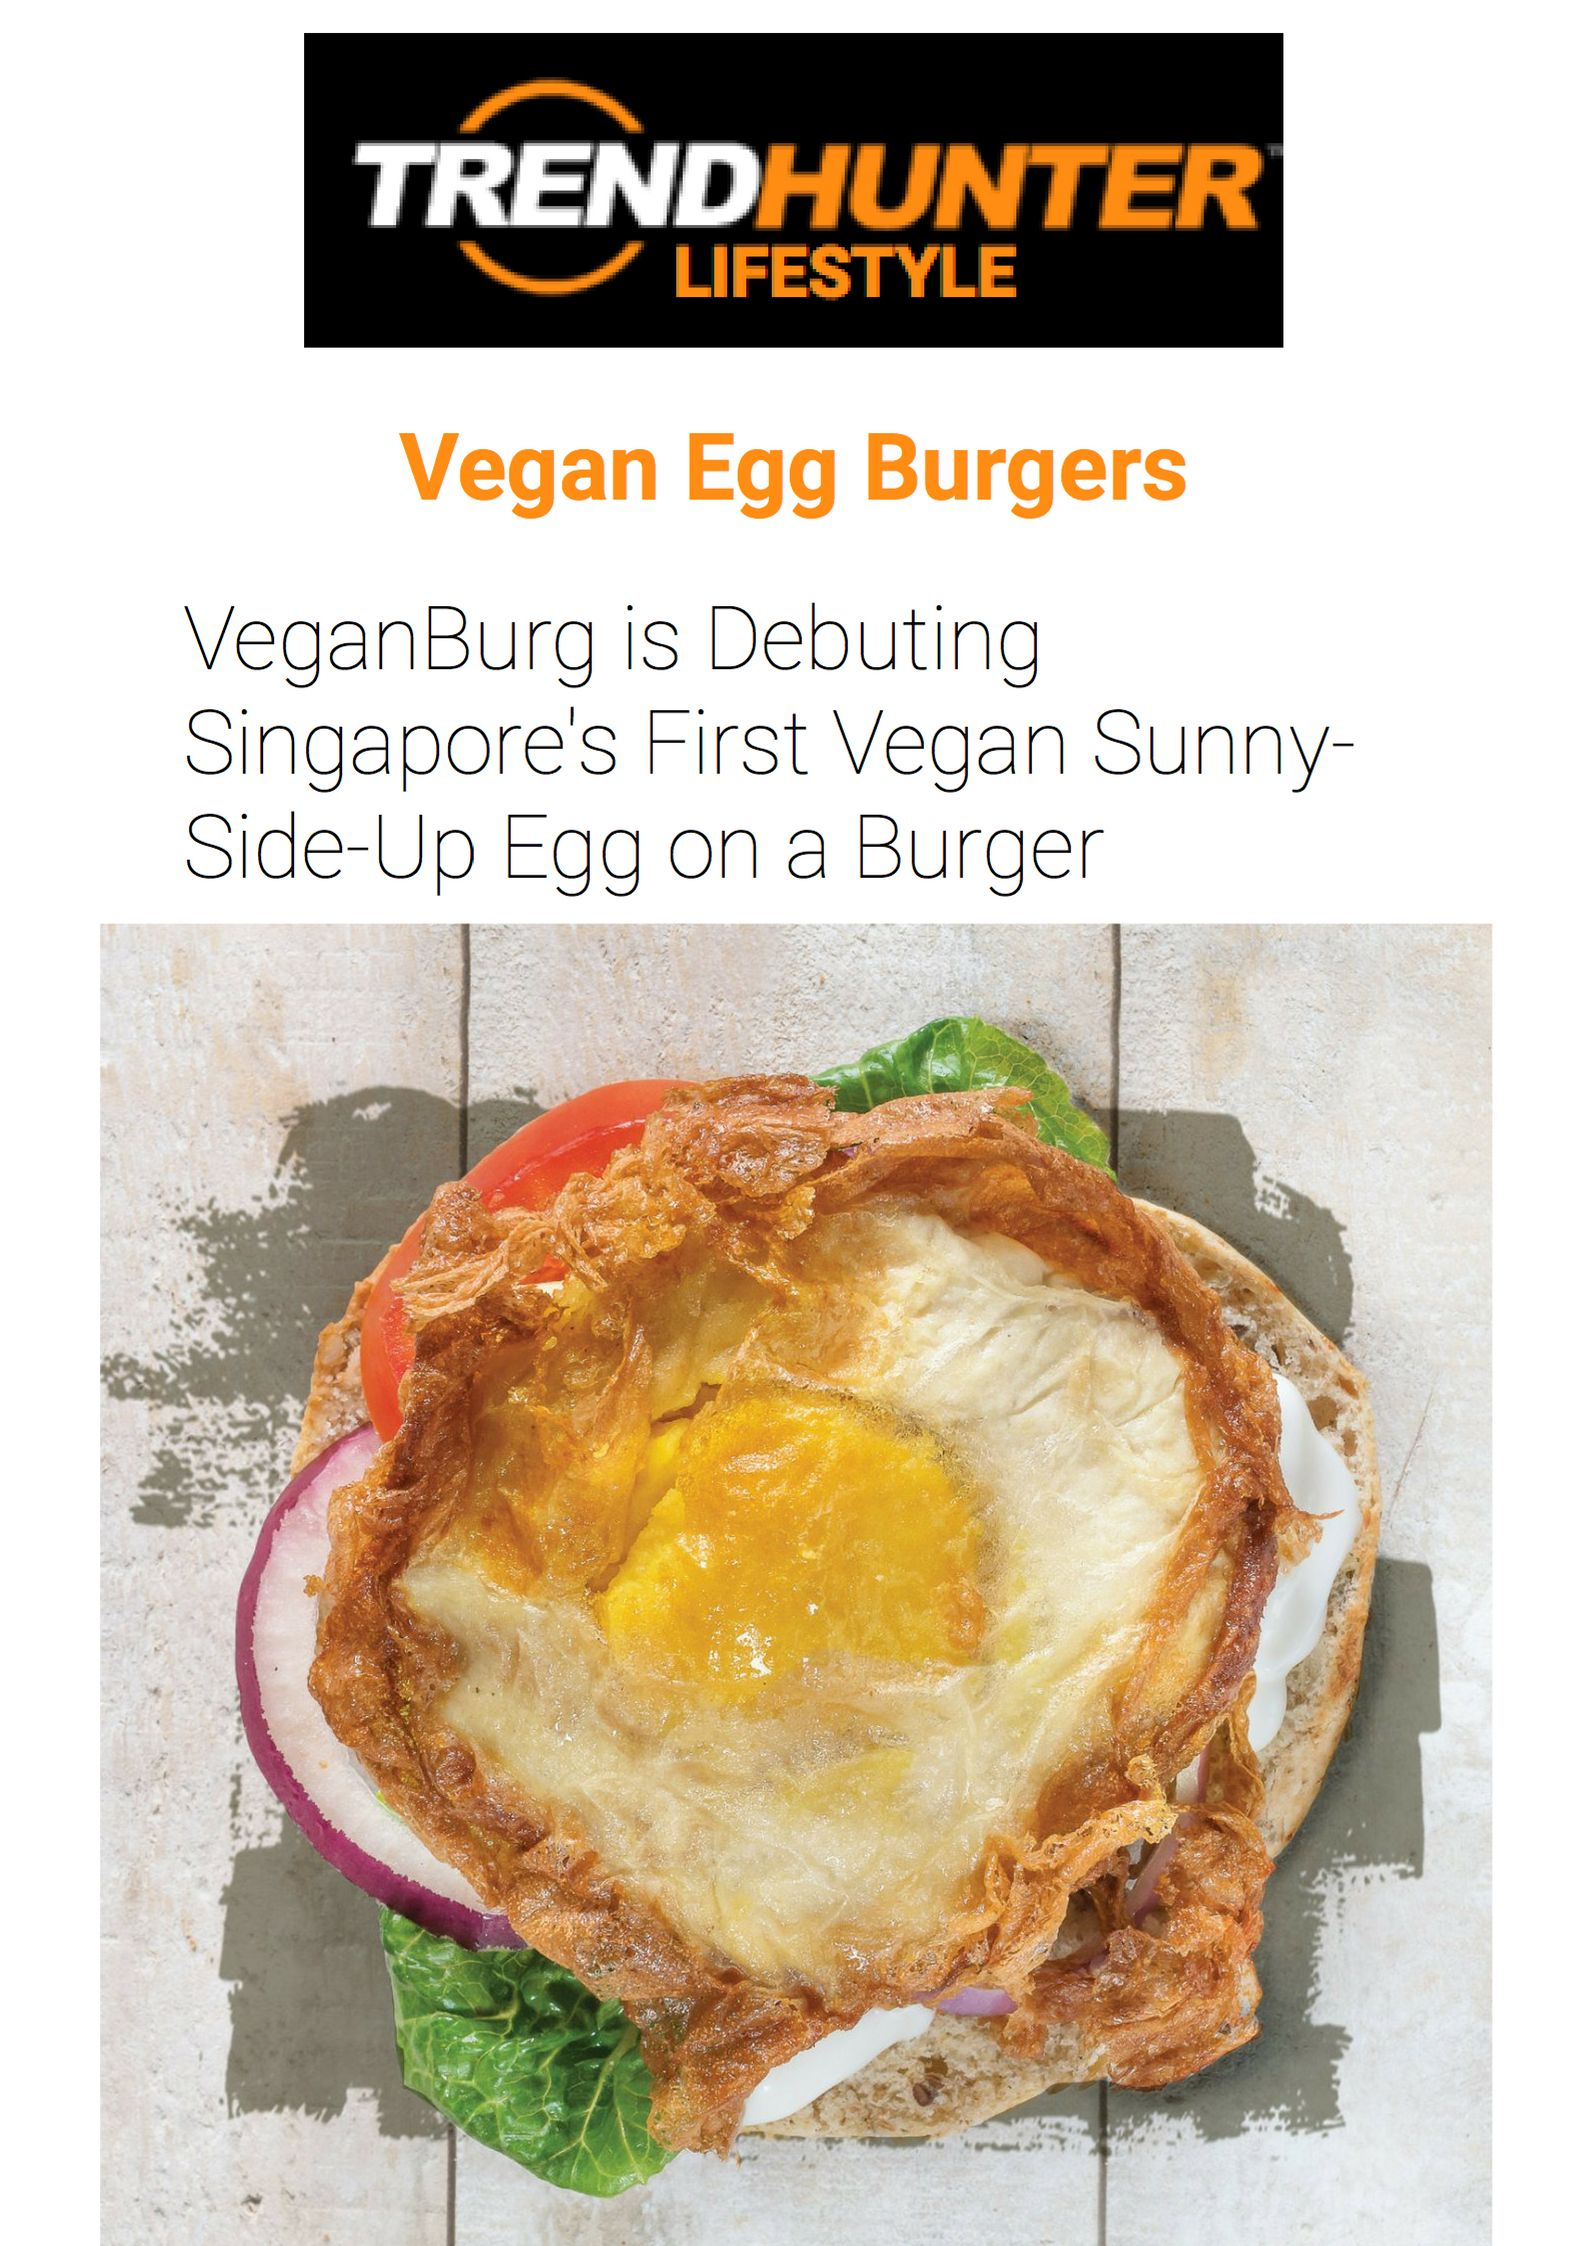 egg burgers - While there are plenty of egg burgers prepared for the carnivorous consumer with a sunny-side-up egg, VeganBurg is now launching Singapore's____.jpg